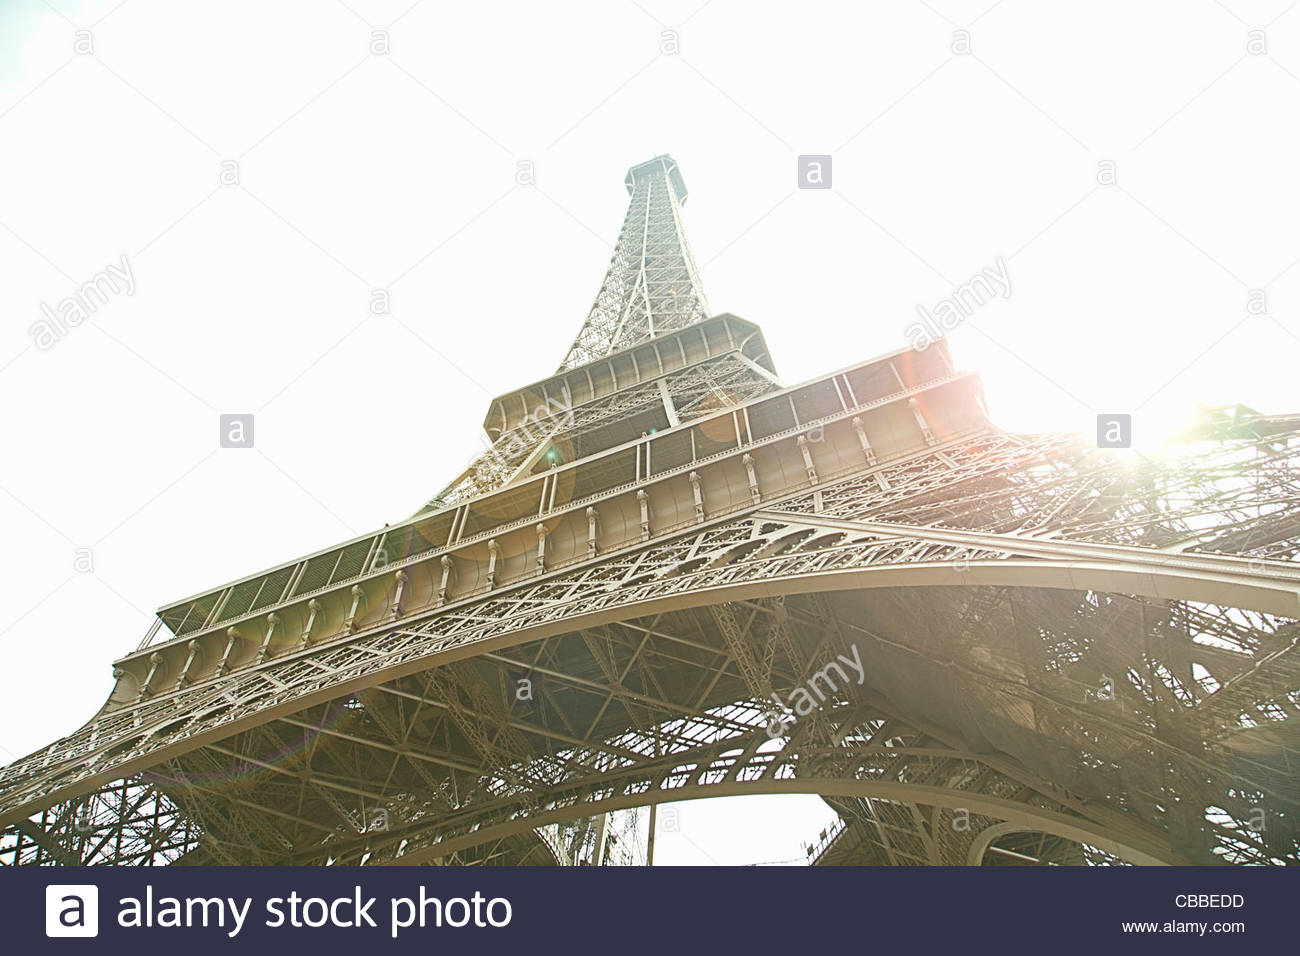 Low angle view of Eiffel Tower in Paris - Stock Image